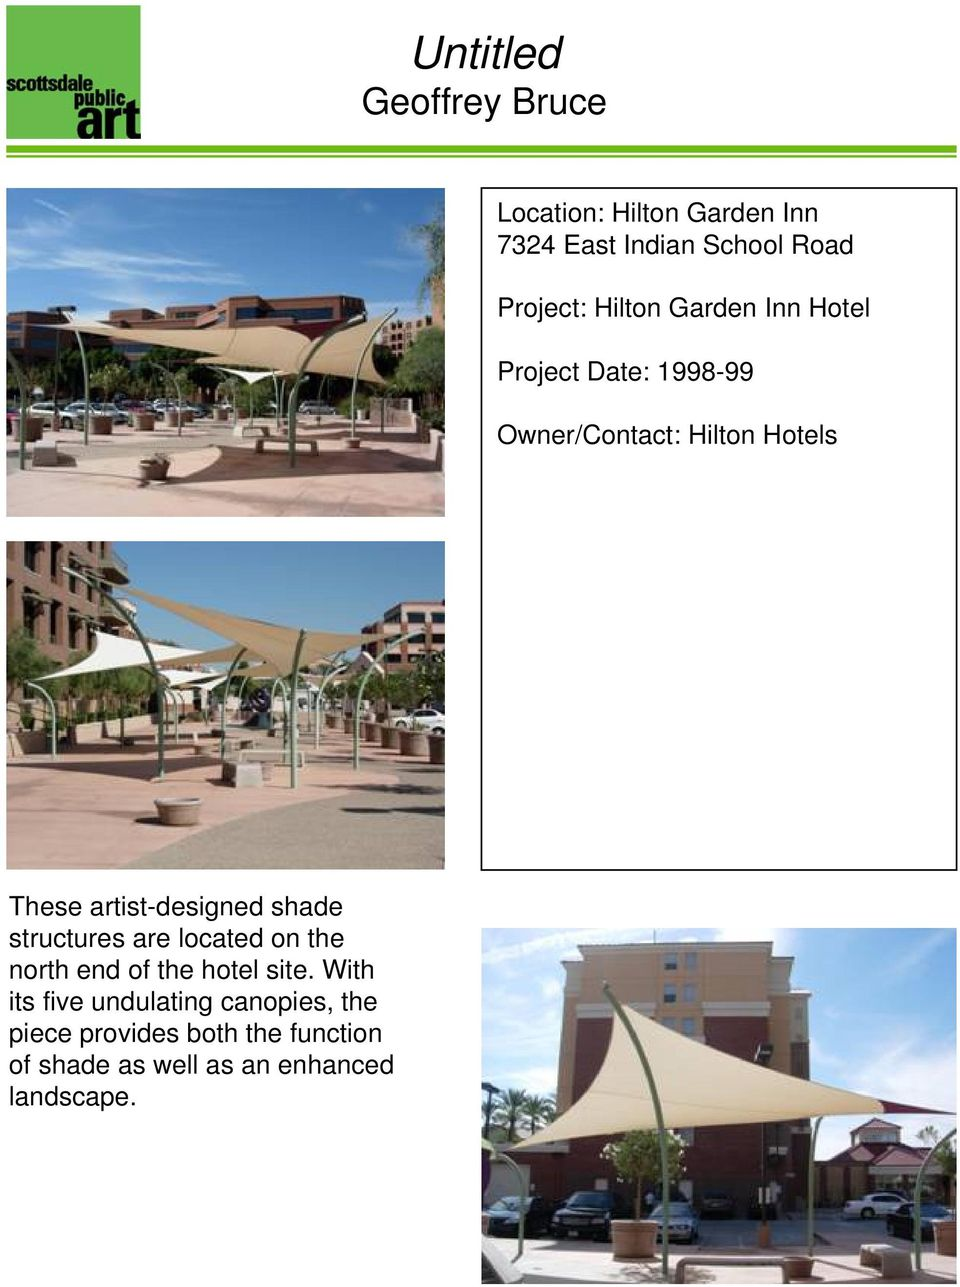 artist-designed shade structures are located on the north end of the hotel site.